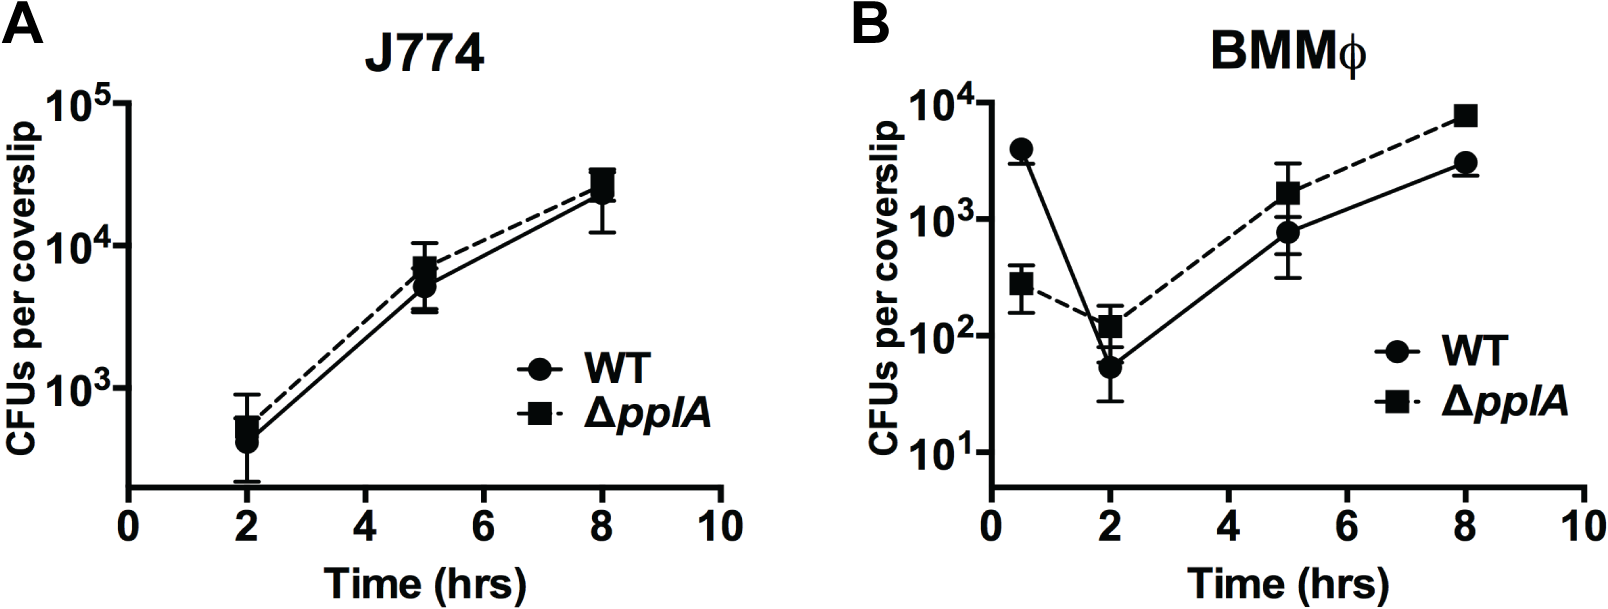 Loss of <i>pplA</i> pheromone does not delay intracellular growth or vacuolar escape in professional phagocytic cells.